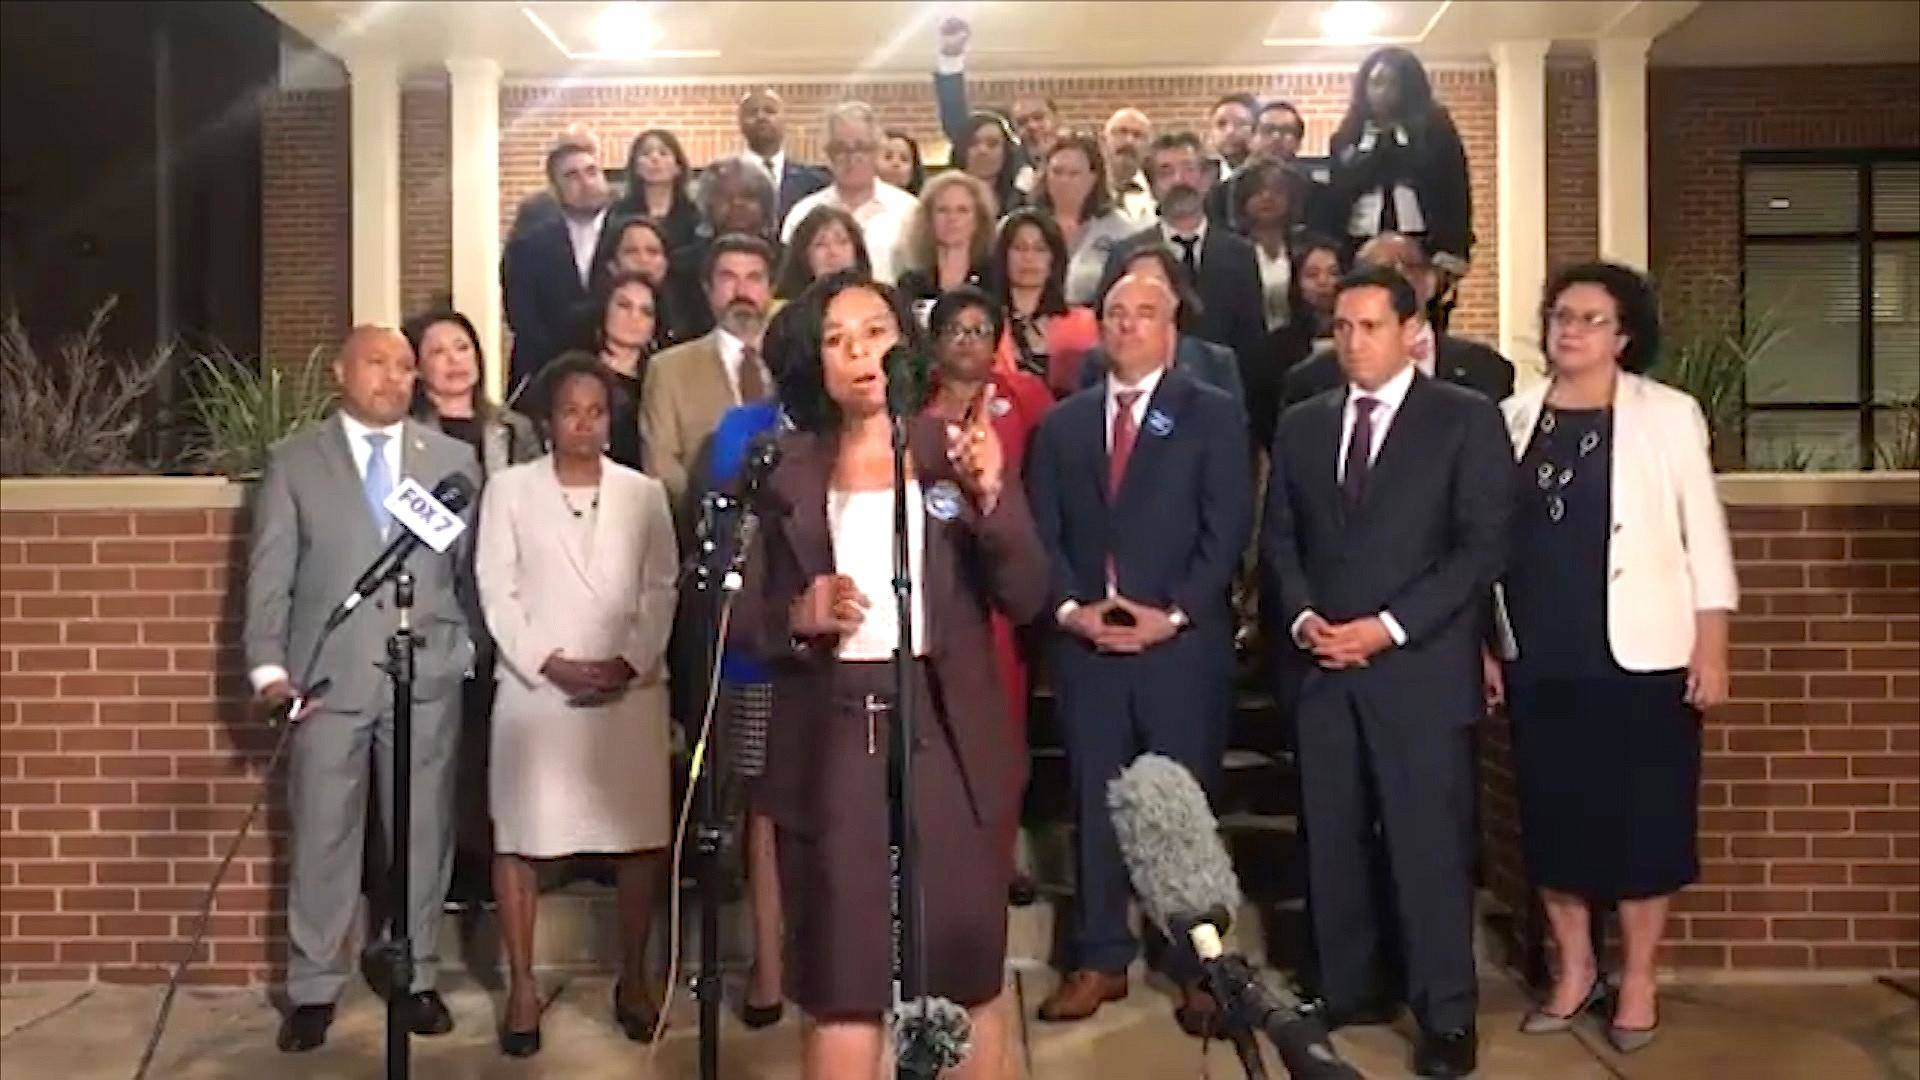 Read more about the article Walk Out: Texas Democrats Block Passage of Voter Suppression Bill by Leaving Capitol Ahead of Vote